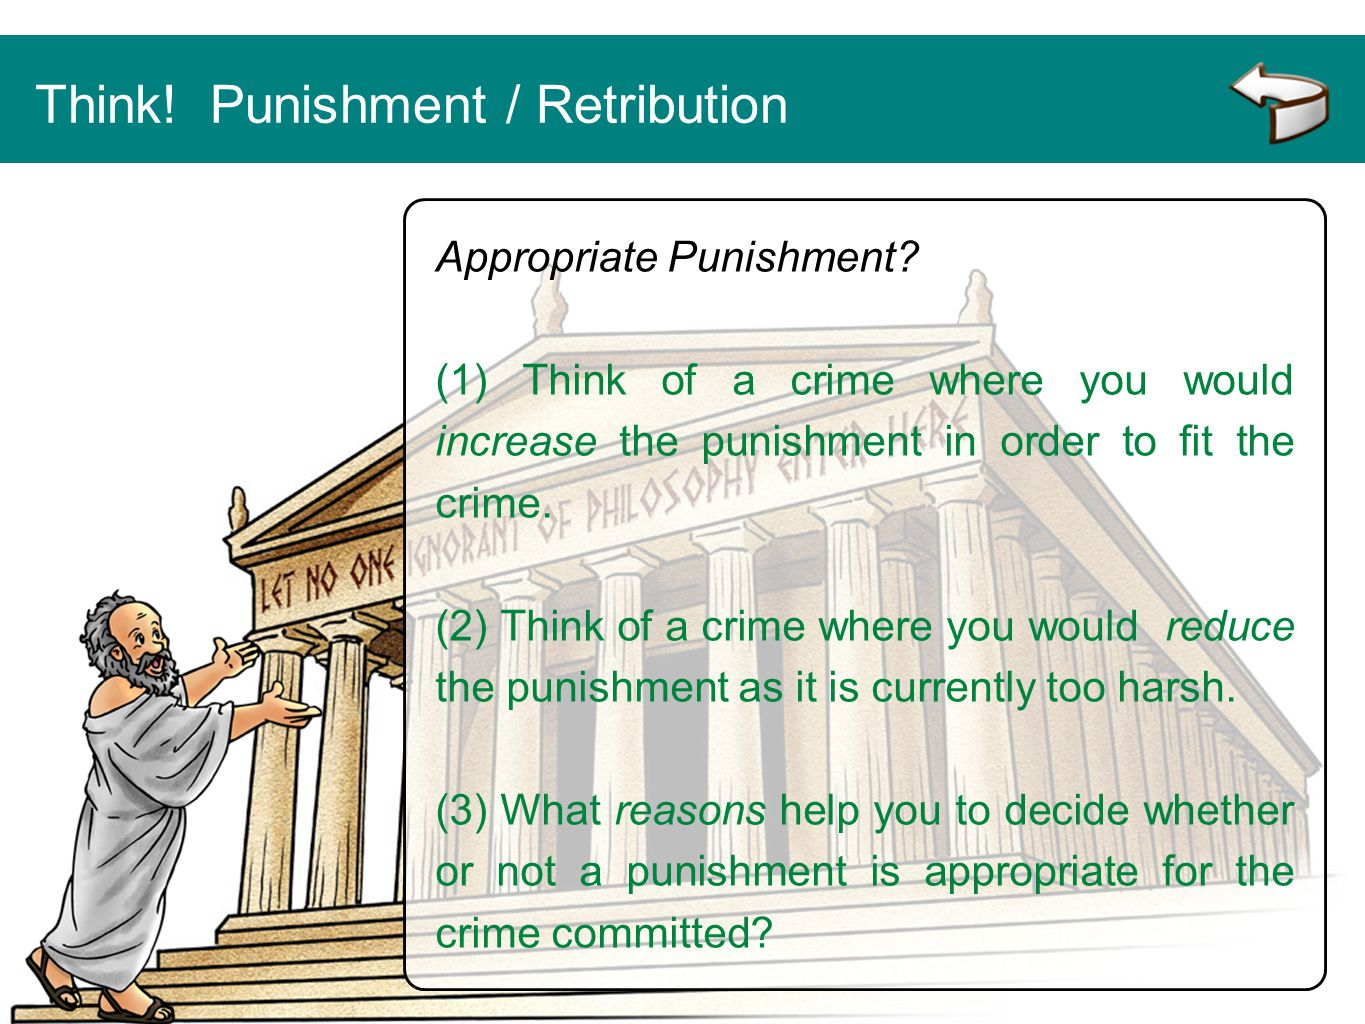 Think! Punishment / Retribution